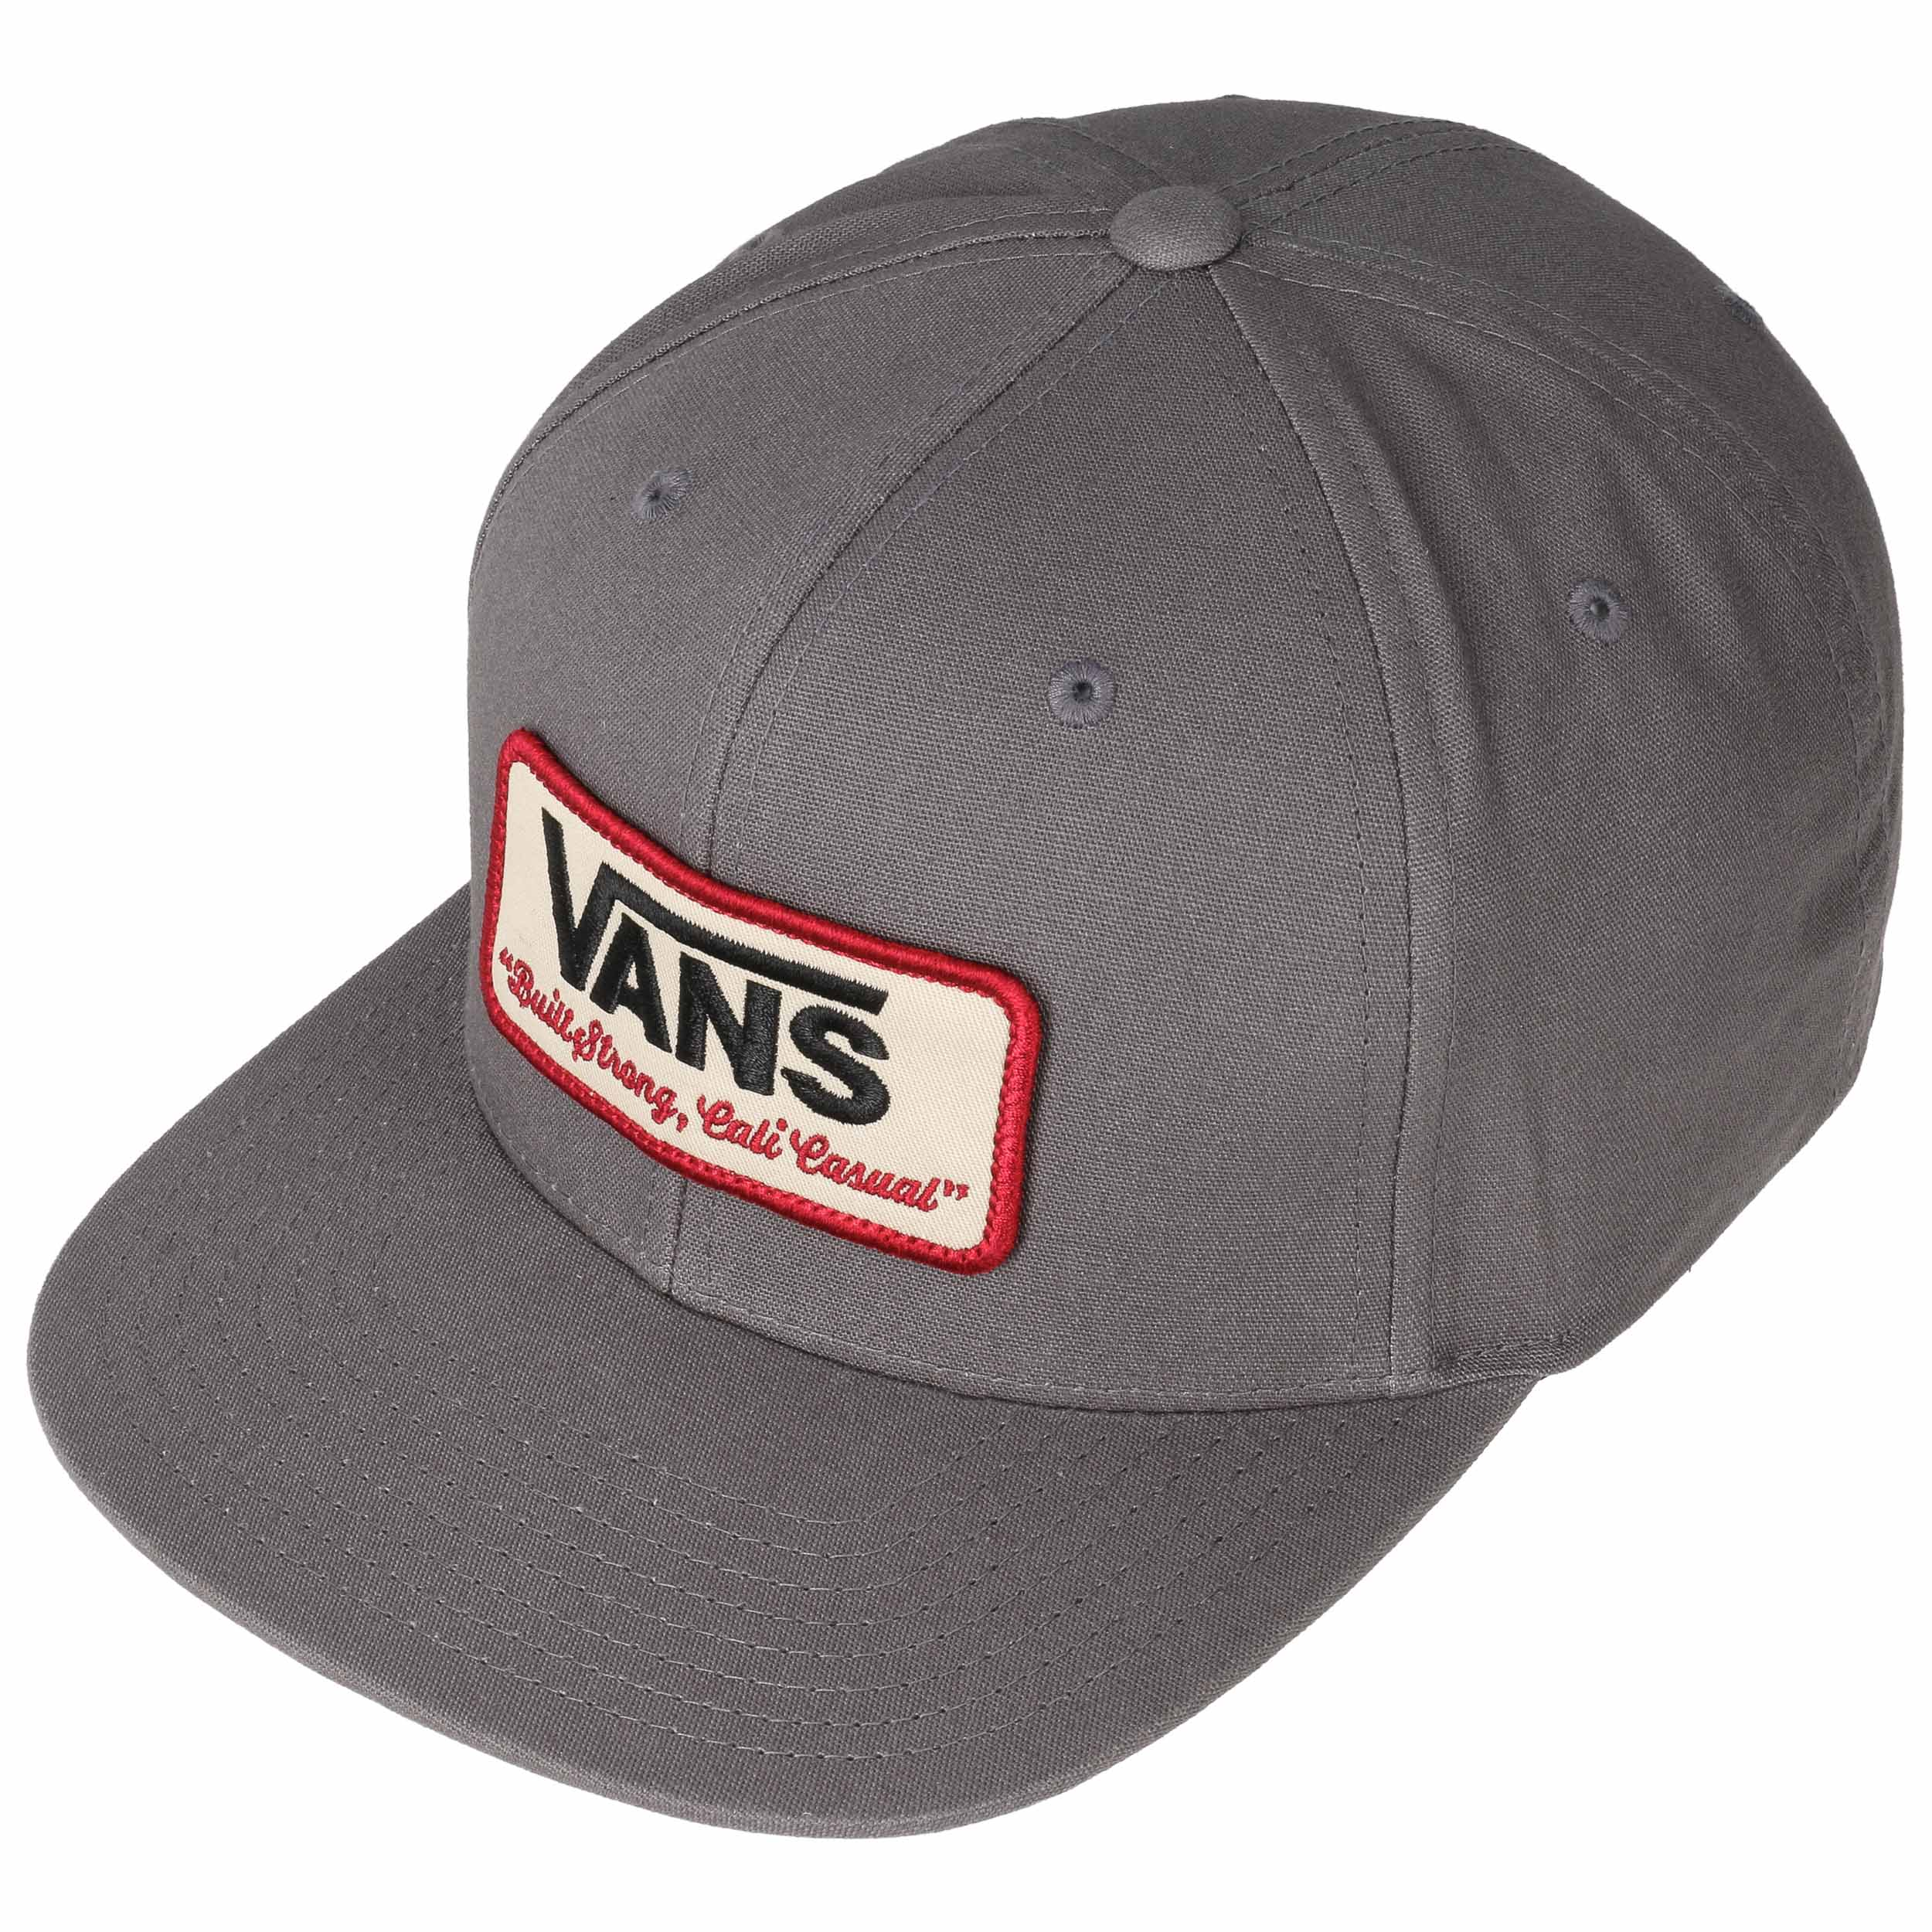 593bd28718f Rowley Snapback Cap by Vans - grey 1 ...